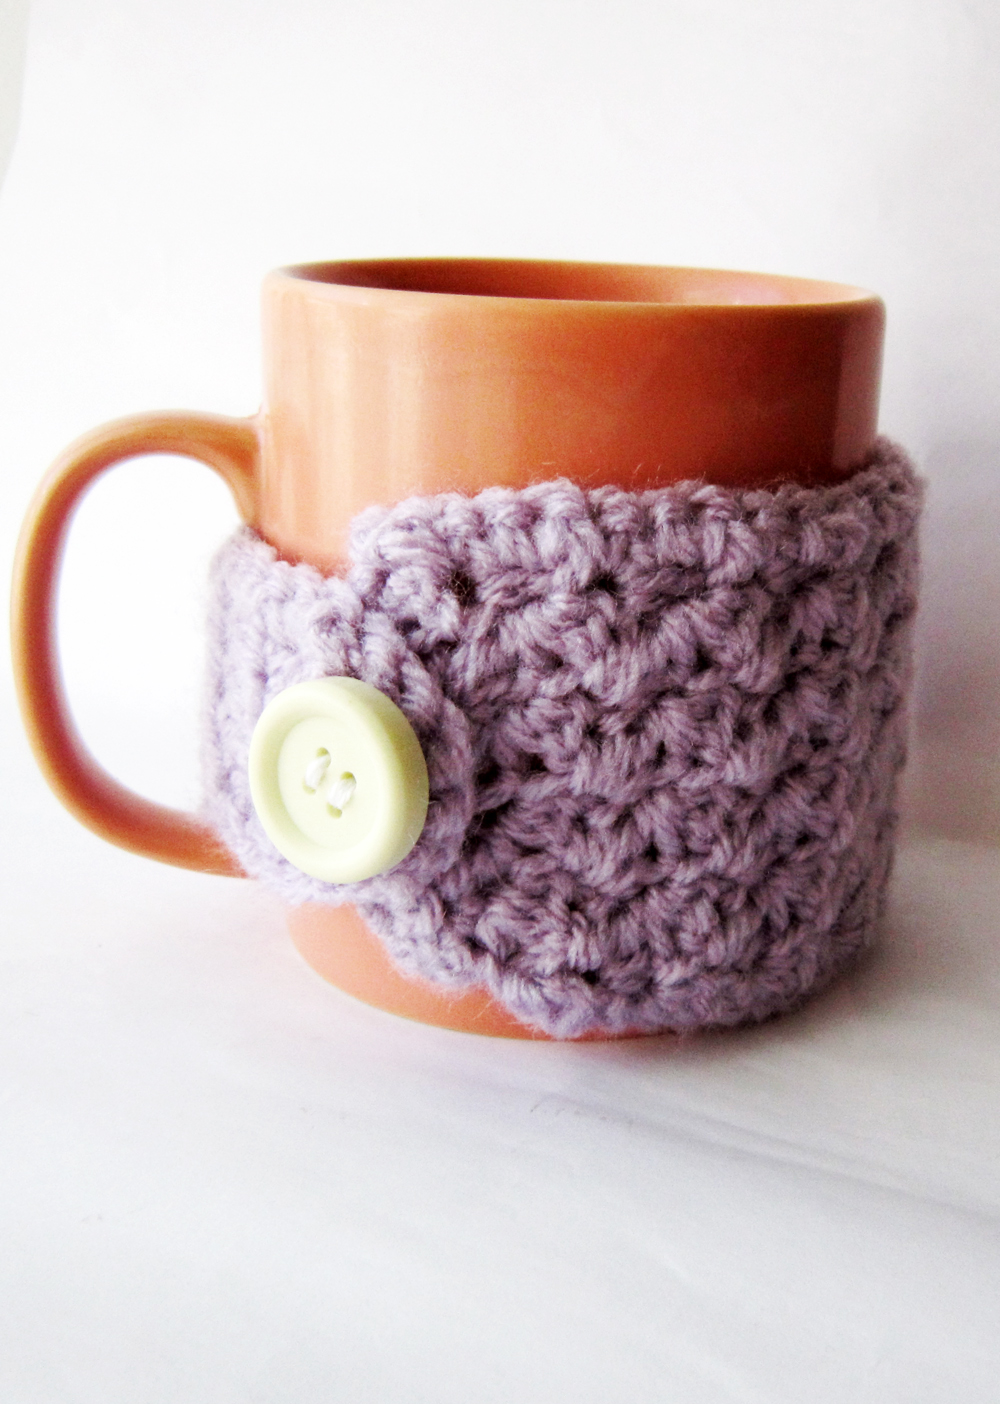 Crochet cup cozy pattern